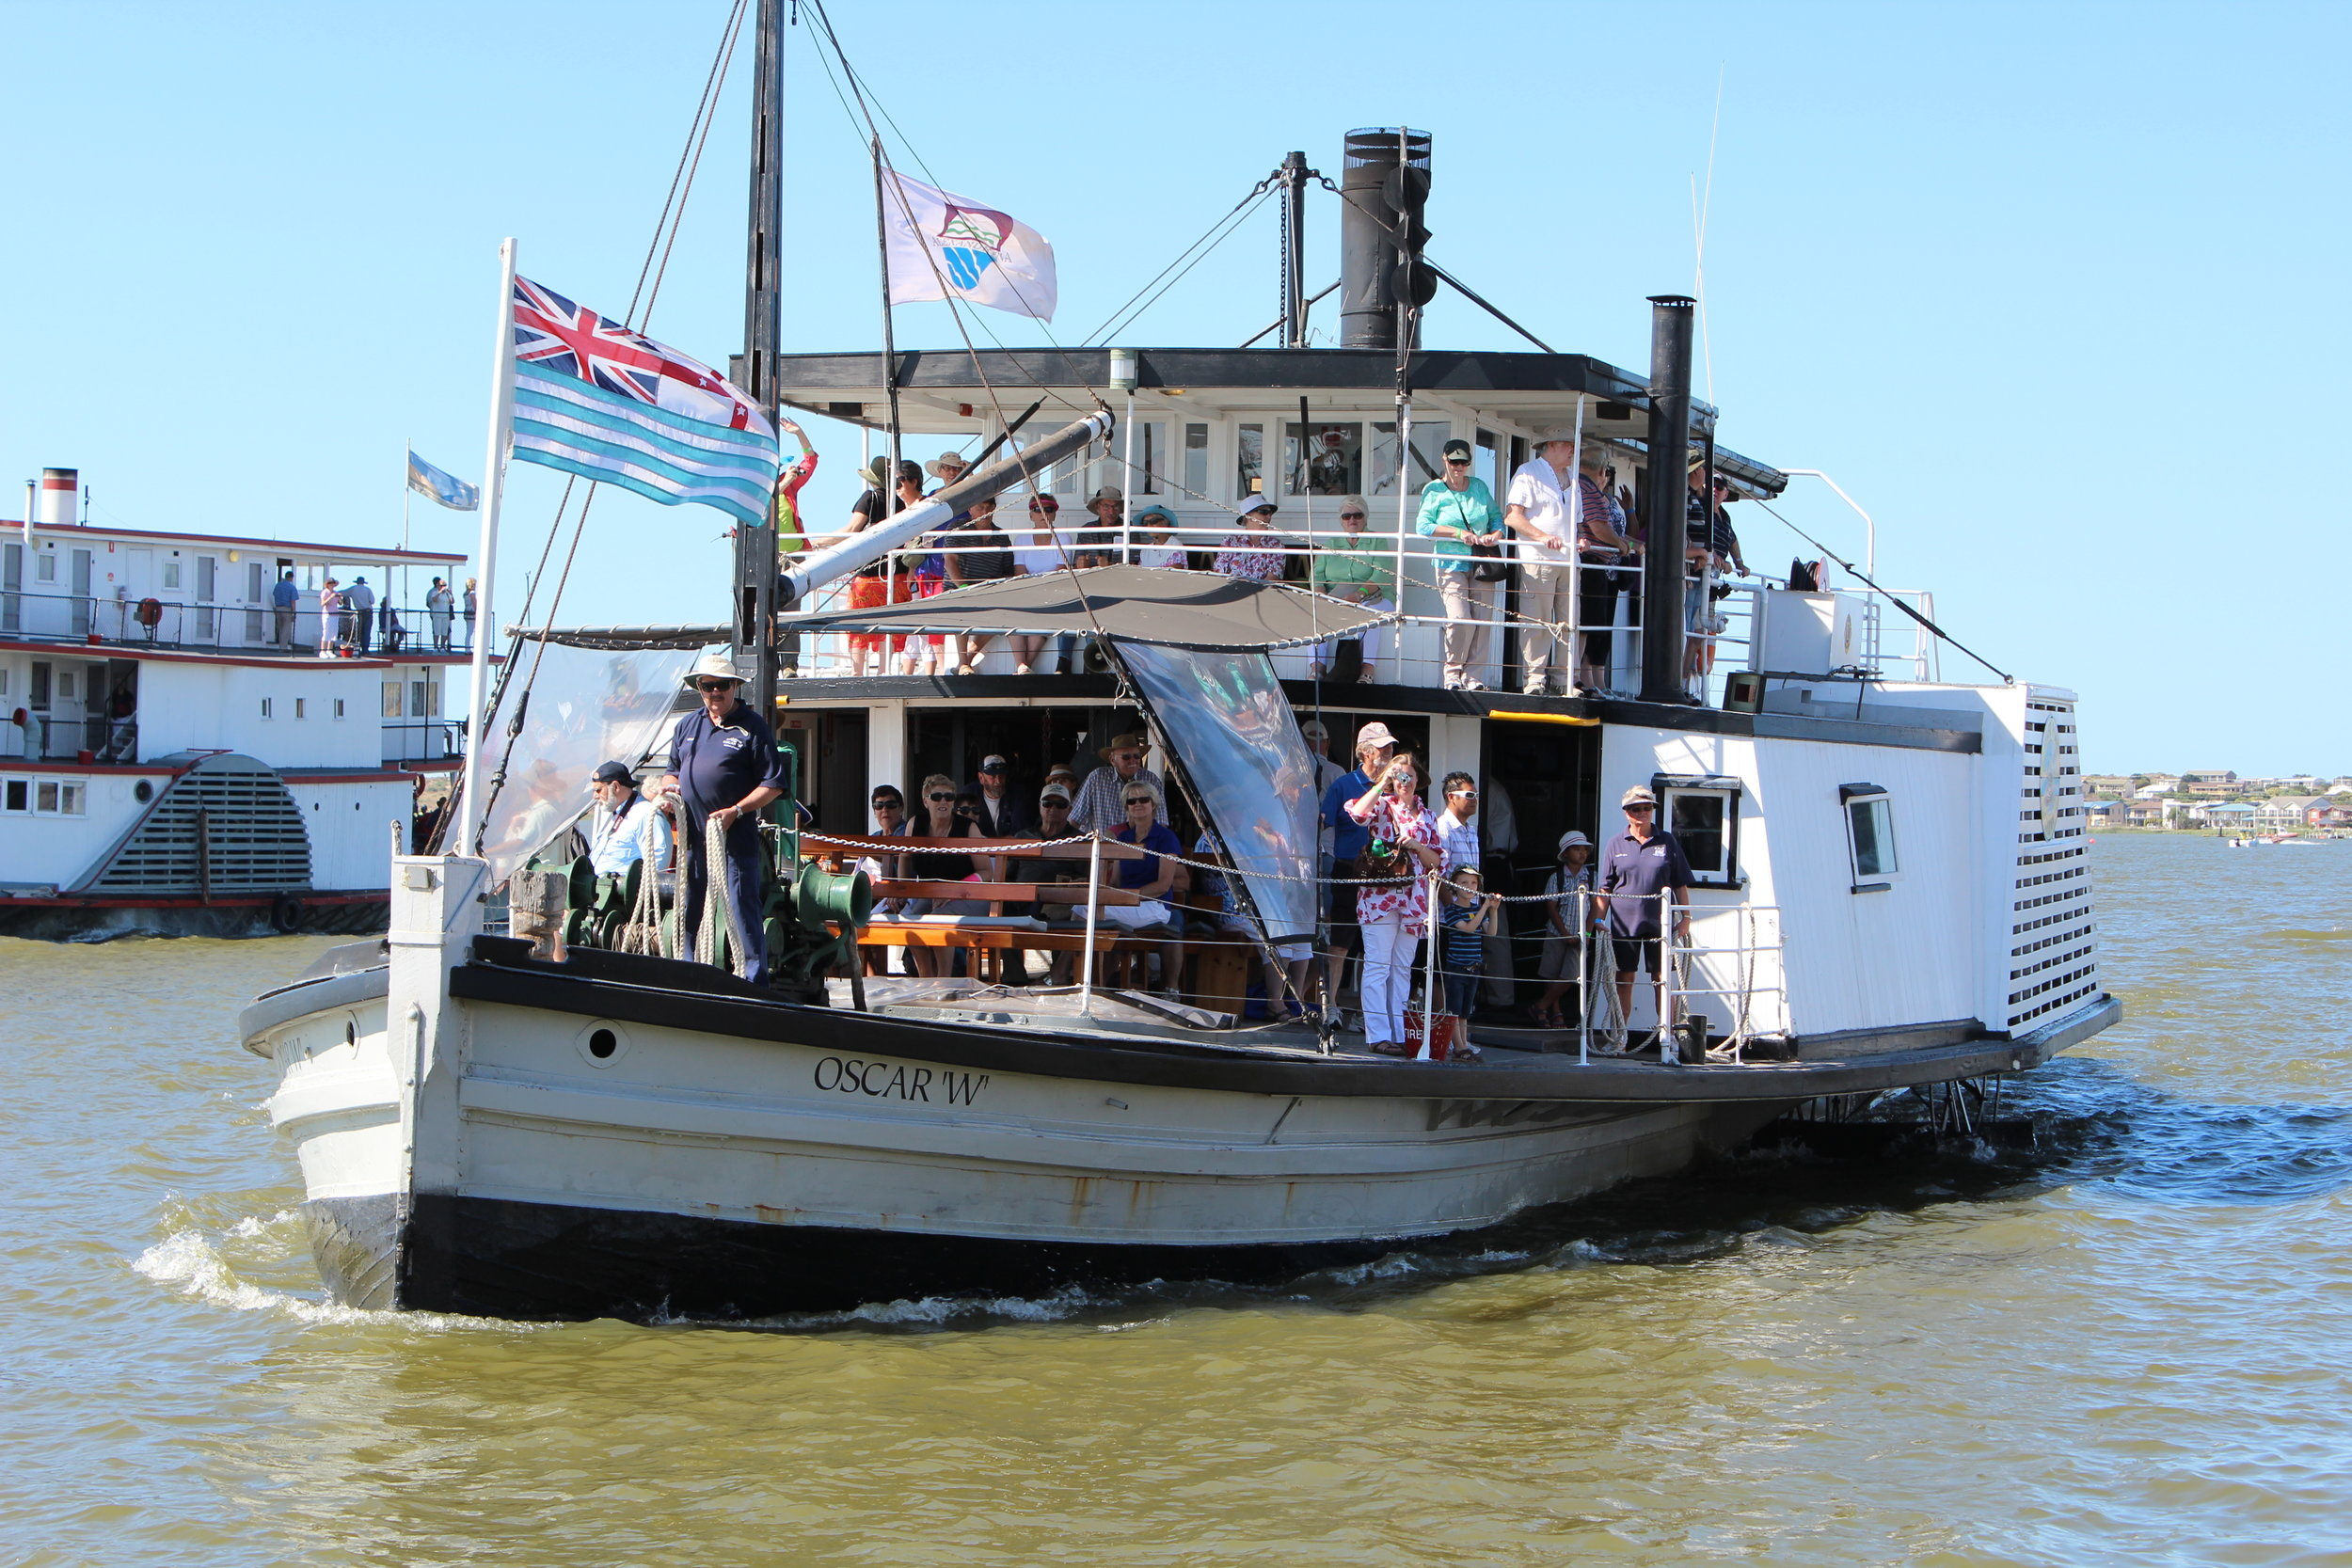 PS Oscar W Goolwa's authentic paddlesteamer